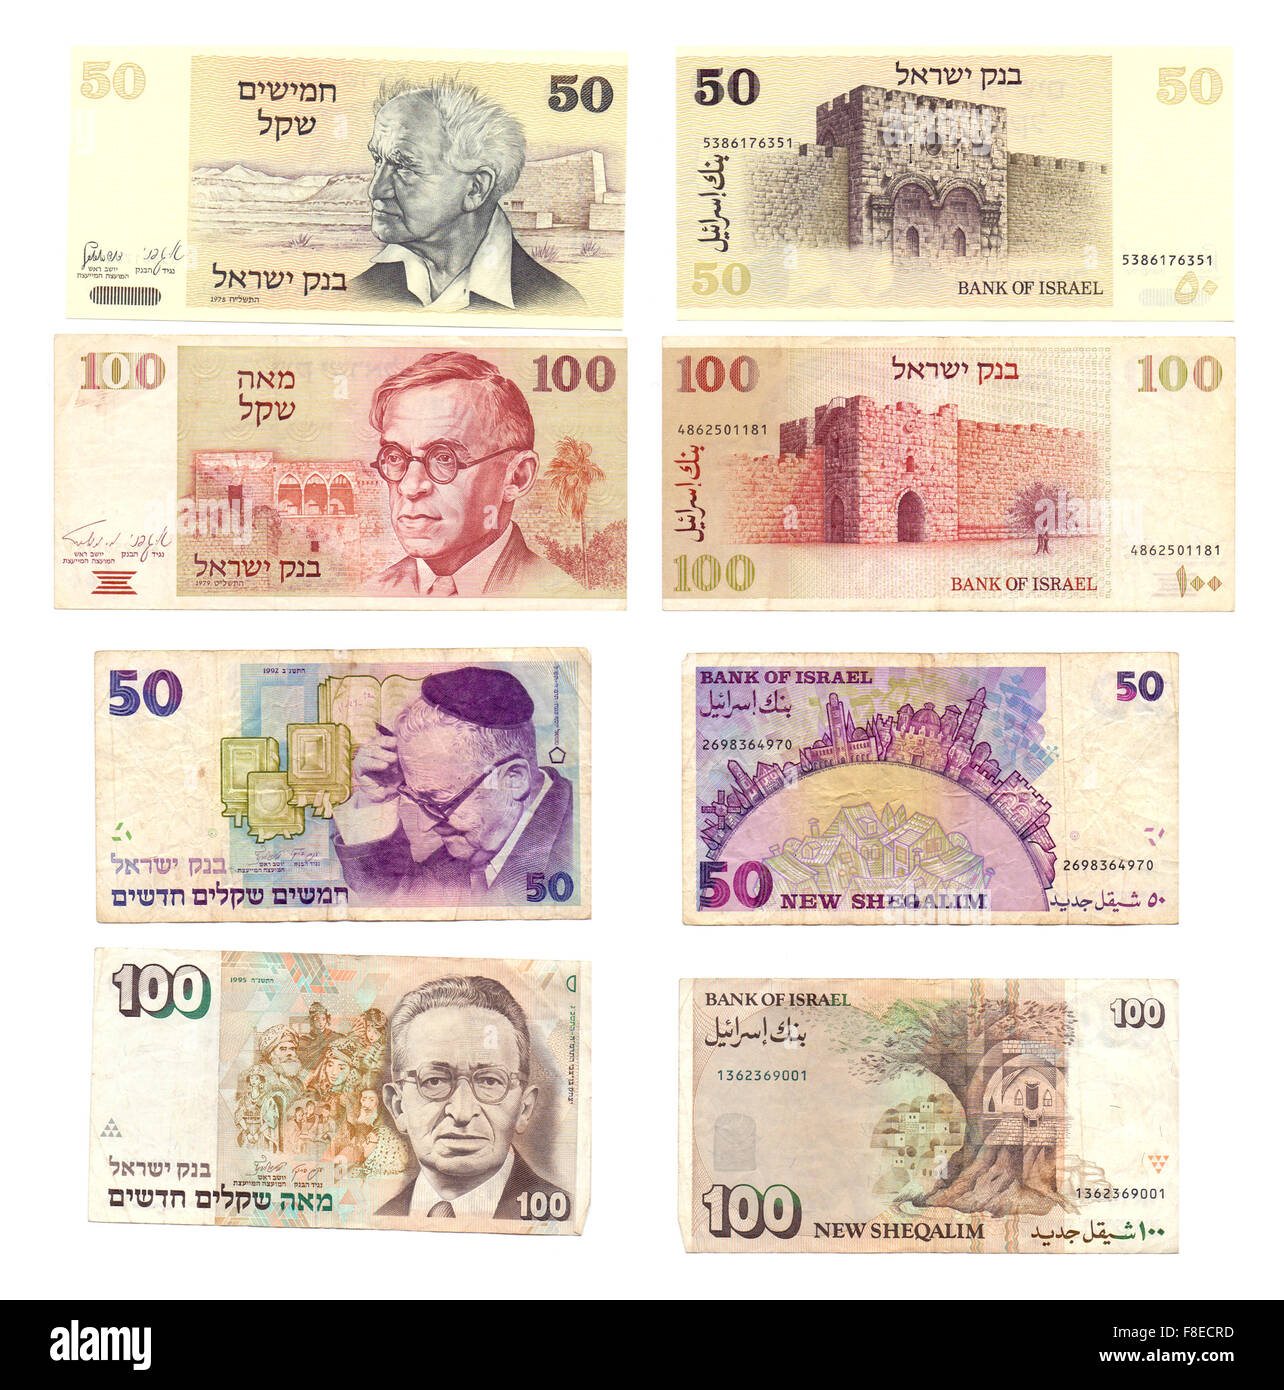 Obsolete Israeli bank notes 50 and 100 Old Shekel (1978 and 1979) and New Shekel (1992 and 1995) notes - Stock Image